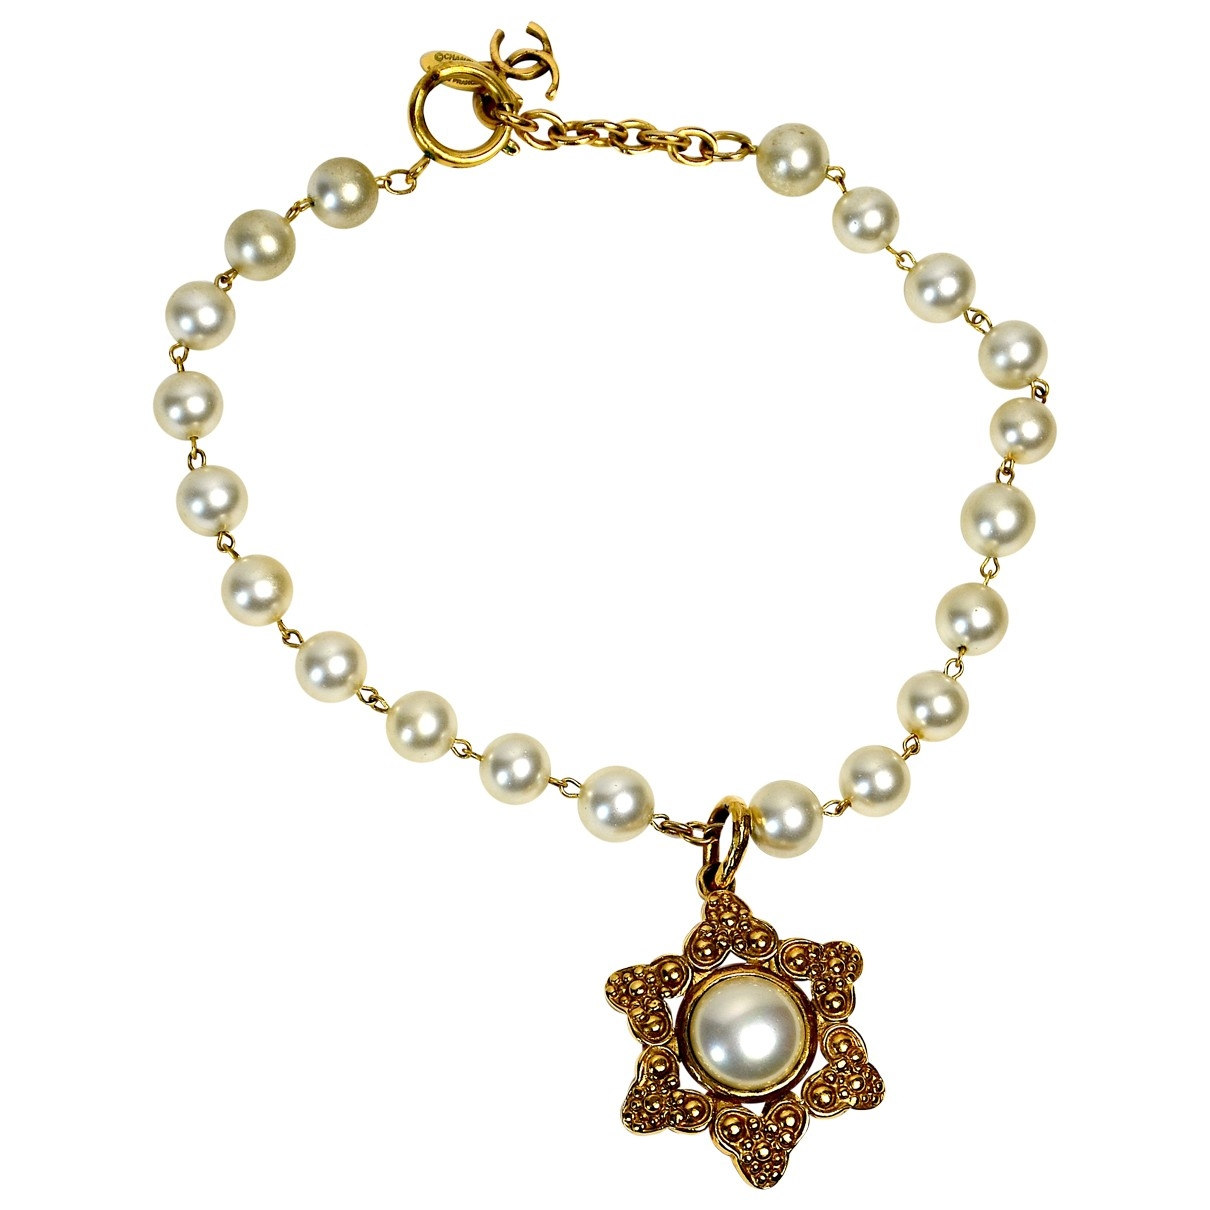 Chanel \N Gold Pearls necklace for Women \N